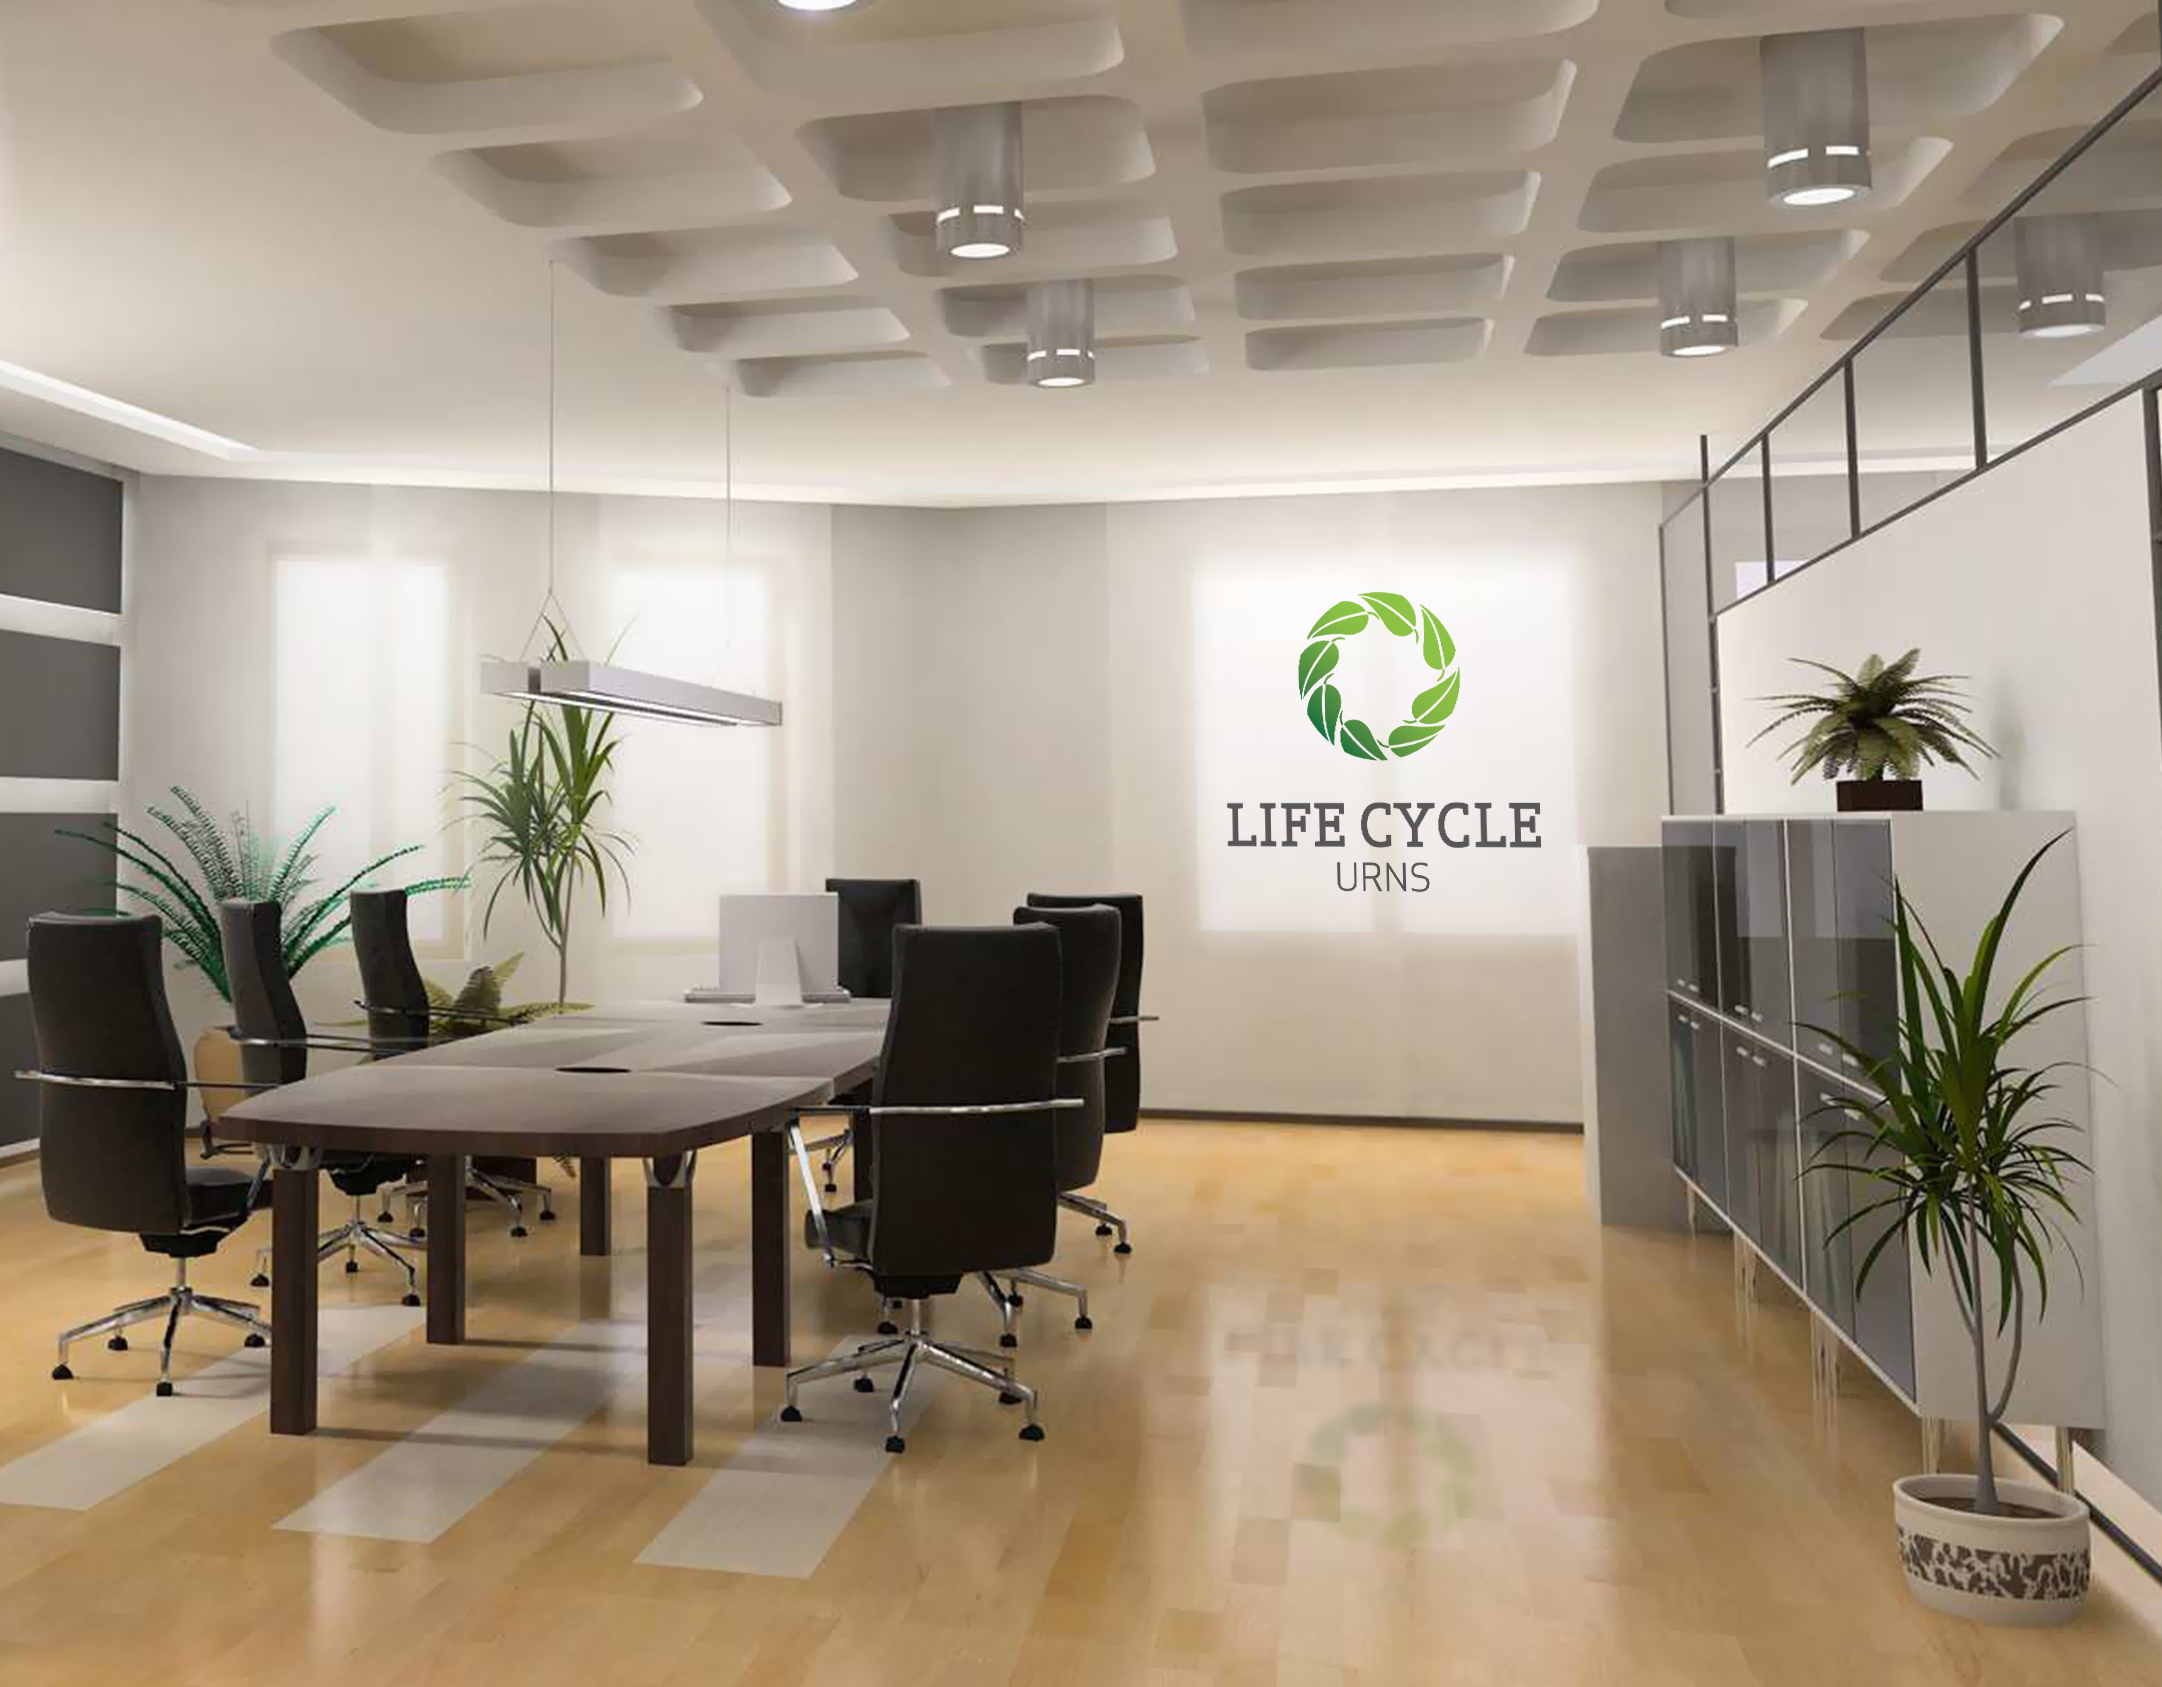 life-cycle-urns-office.jpg